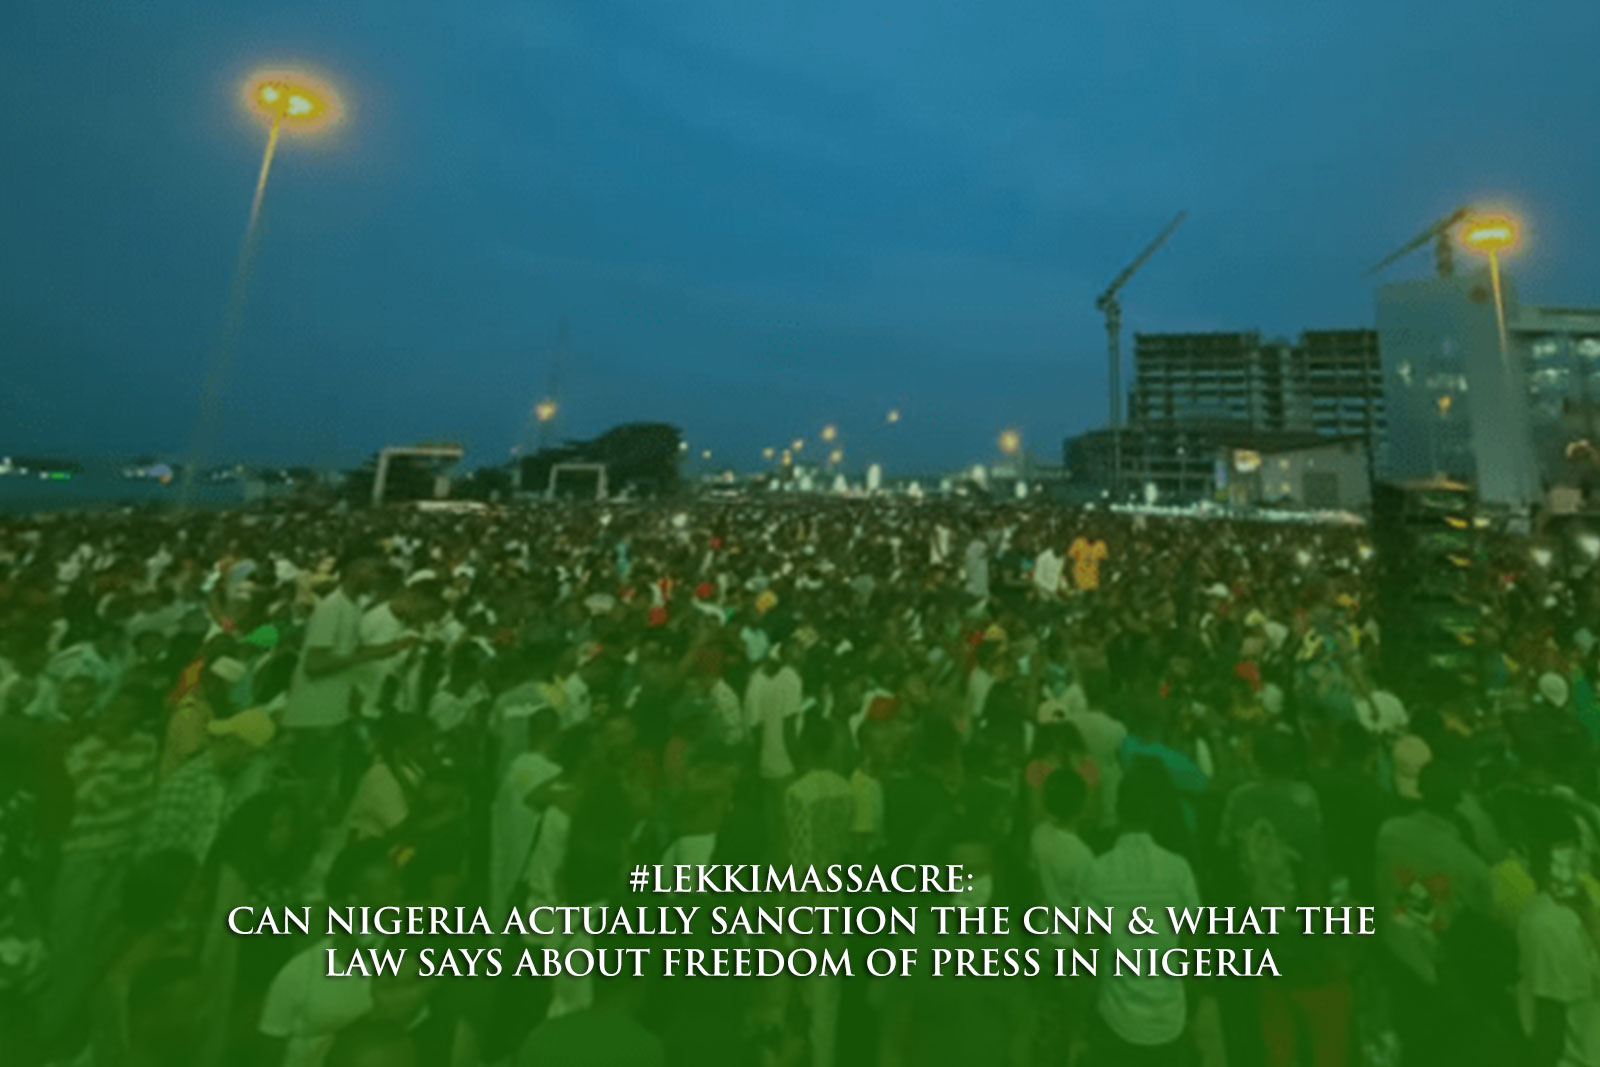 LEKKI MASSACRE: CAN NIGERIA ACTUALLY SANCTION THE CNN & WHAT THE LAW SAYS ABOUT FREEDOM OF PRESS IN NIGERIA